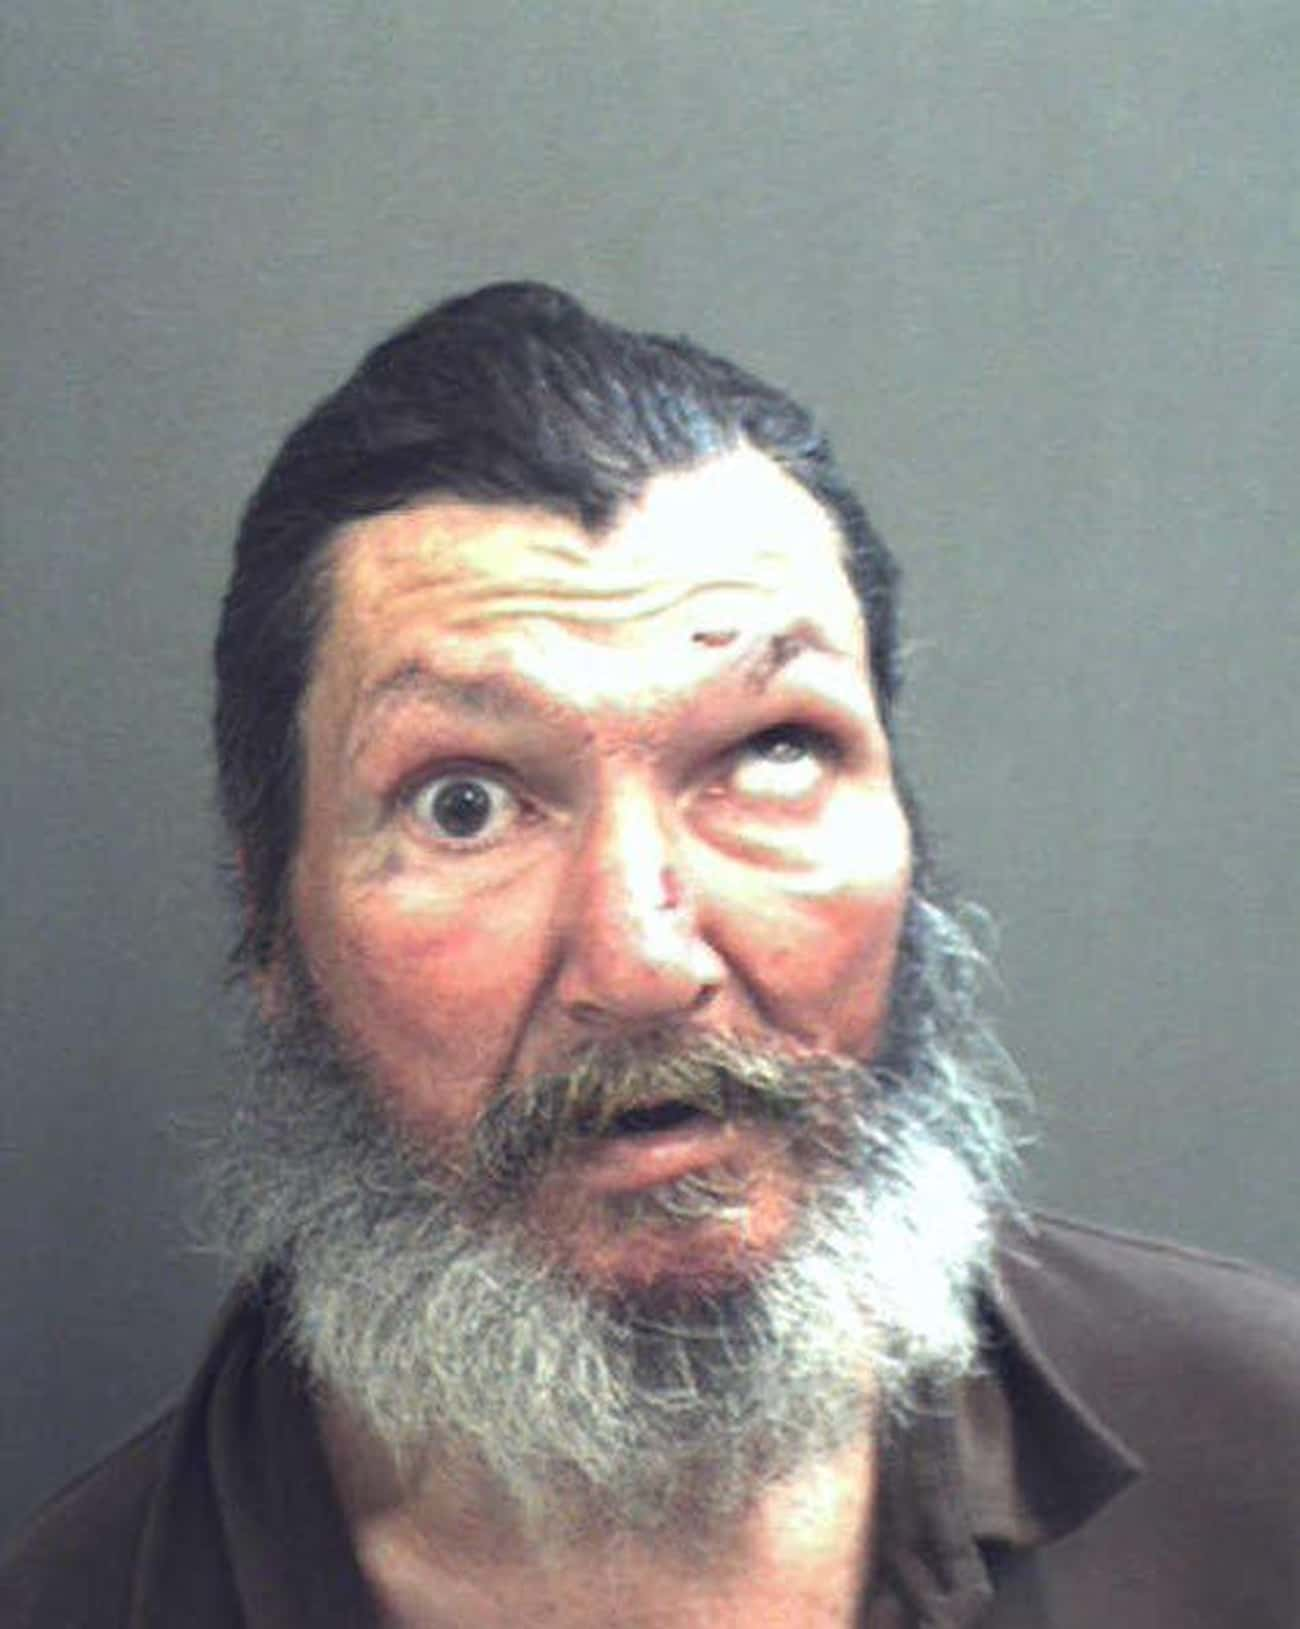 Shock And Awe is listed (or ranked) 3 on the list 28 Hilarious Florida Mugshots